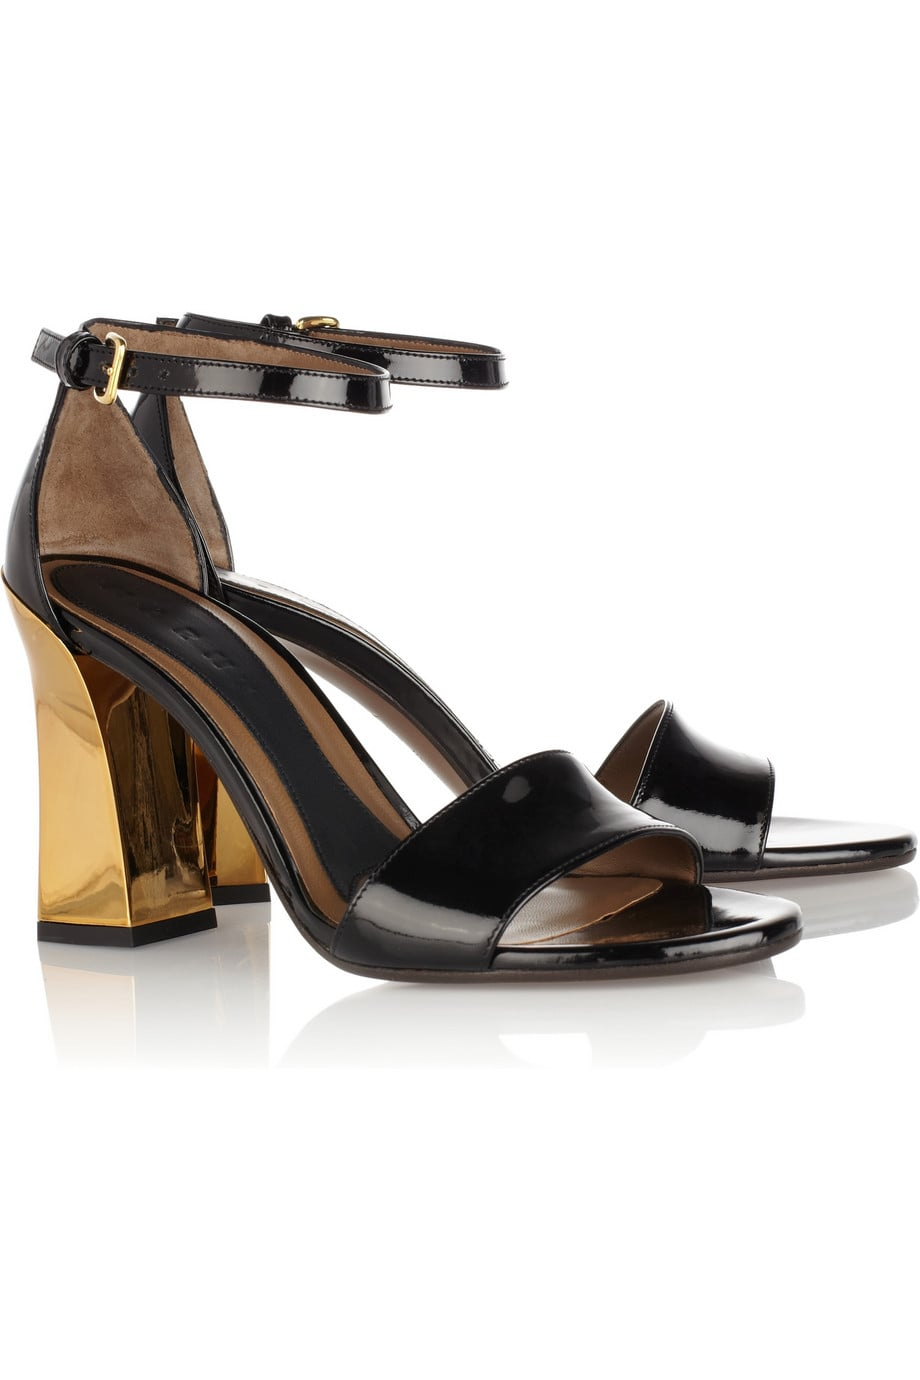 """I was sold as soon as I spotted the chunkier gold heel, but as a whole, Marni's patent leather sandals ($738) are essentially the answer to all my """"what shoes should I wear with this dress?"""" problems. — Marisa Tom, associate editor"""